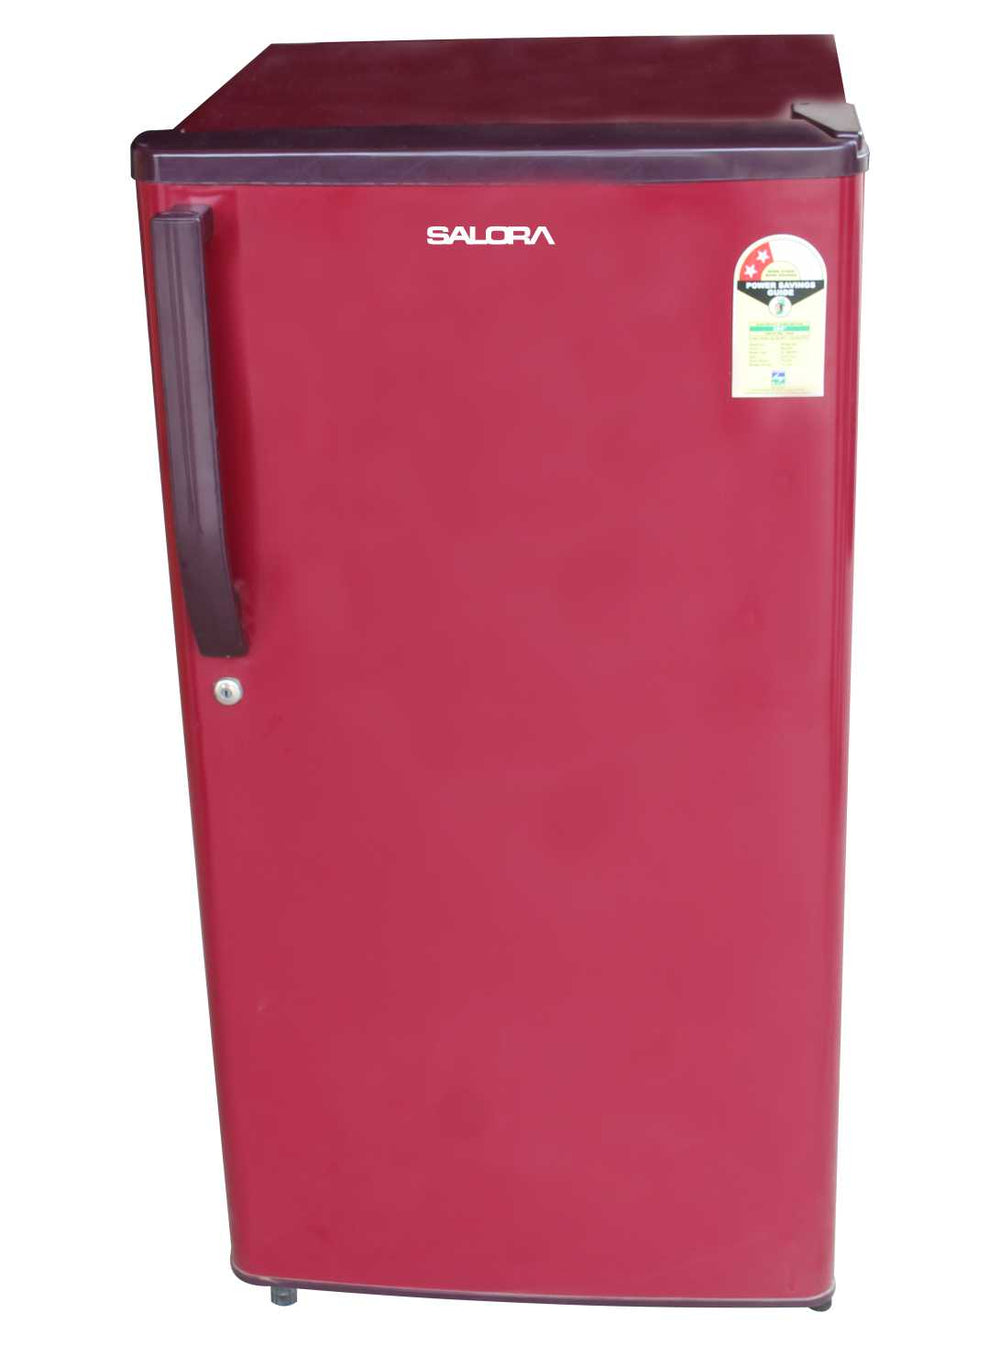 Salora Refrigerator 180 L  2 Star Single Door  SFD  1852 BBU